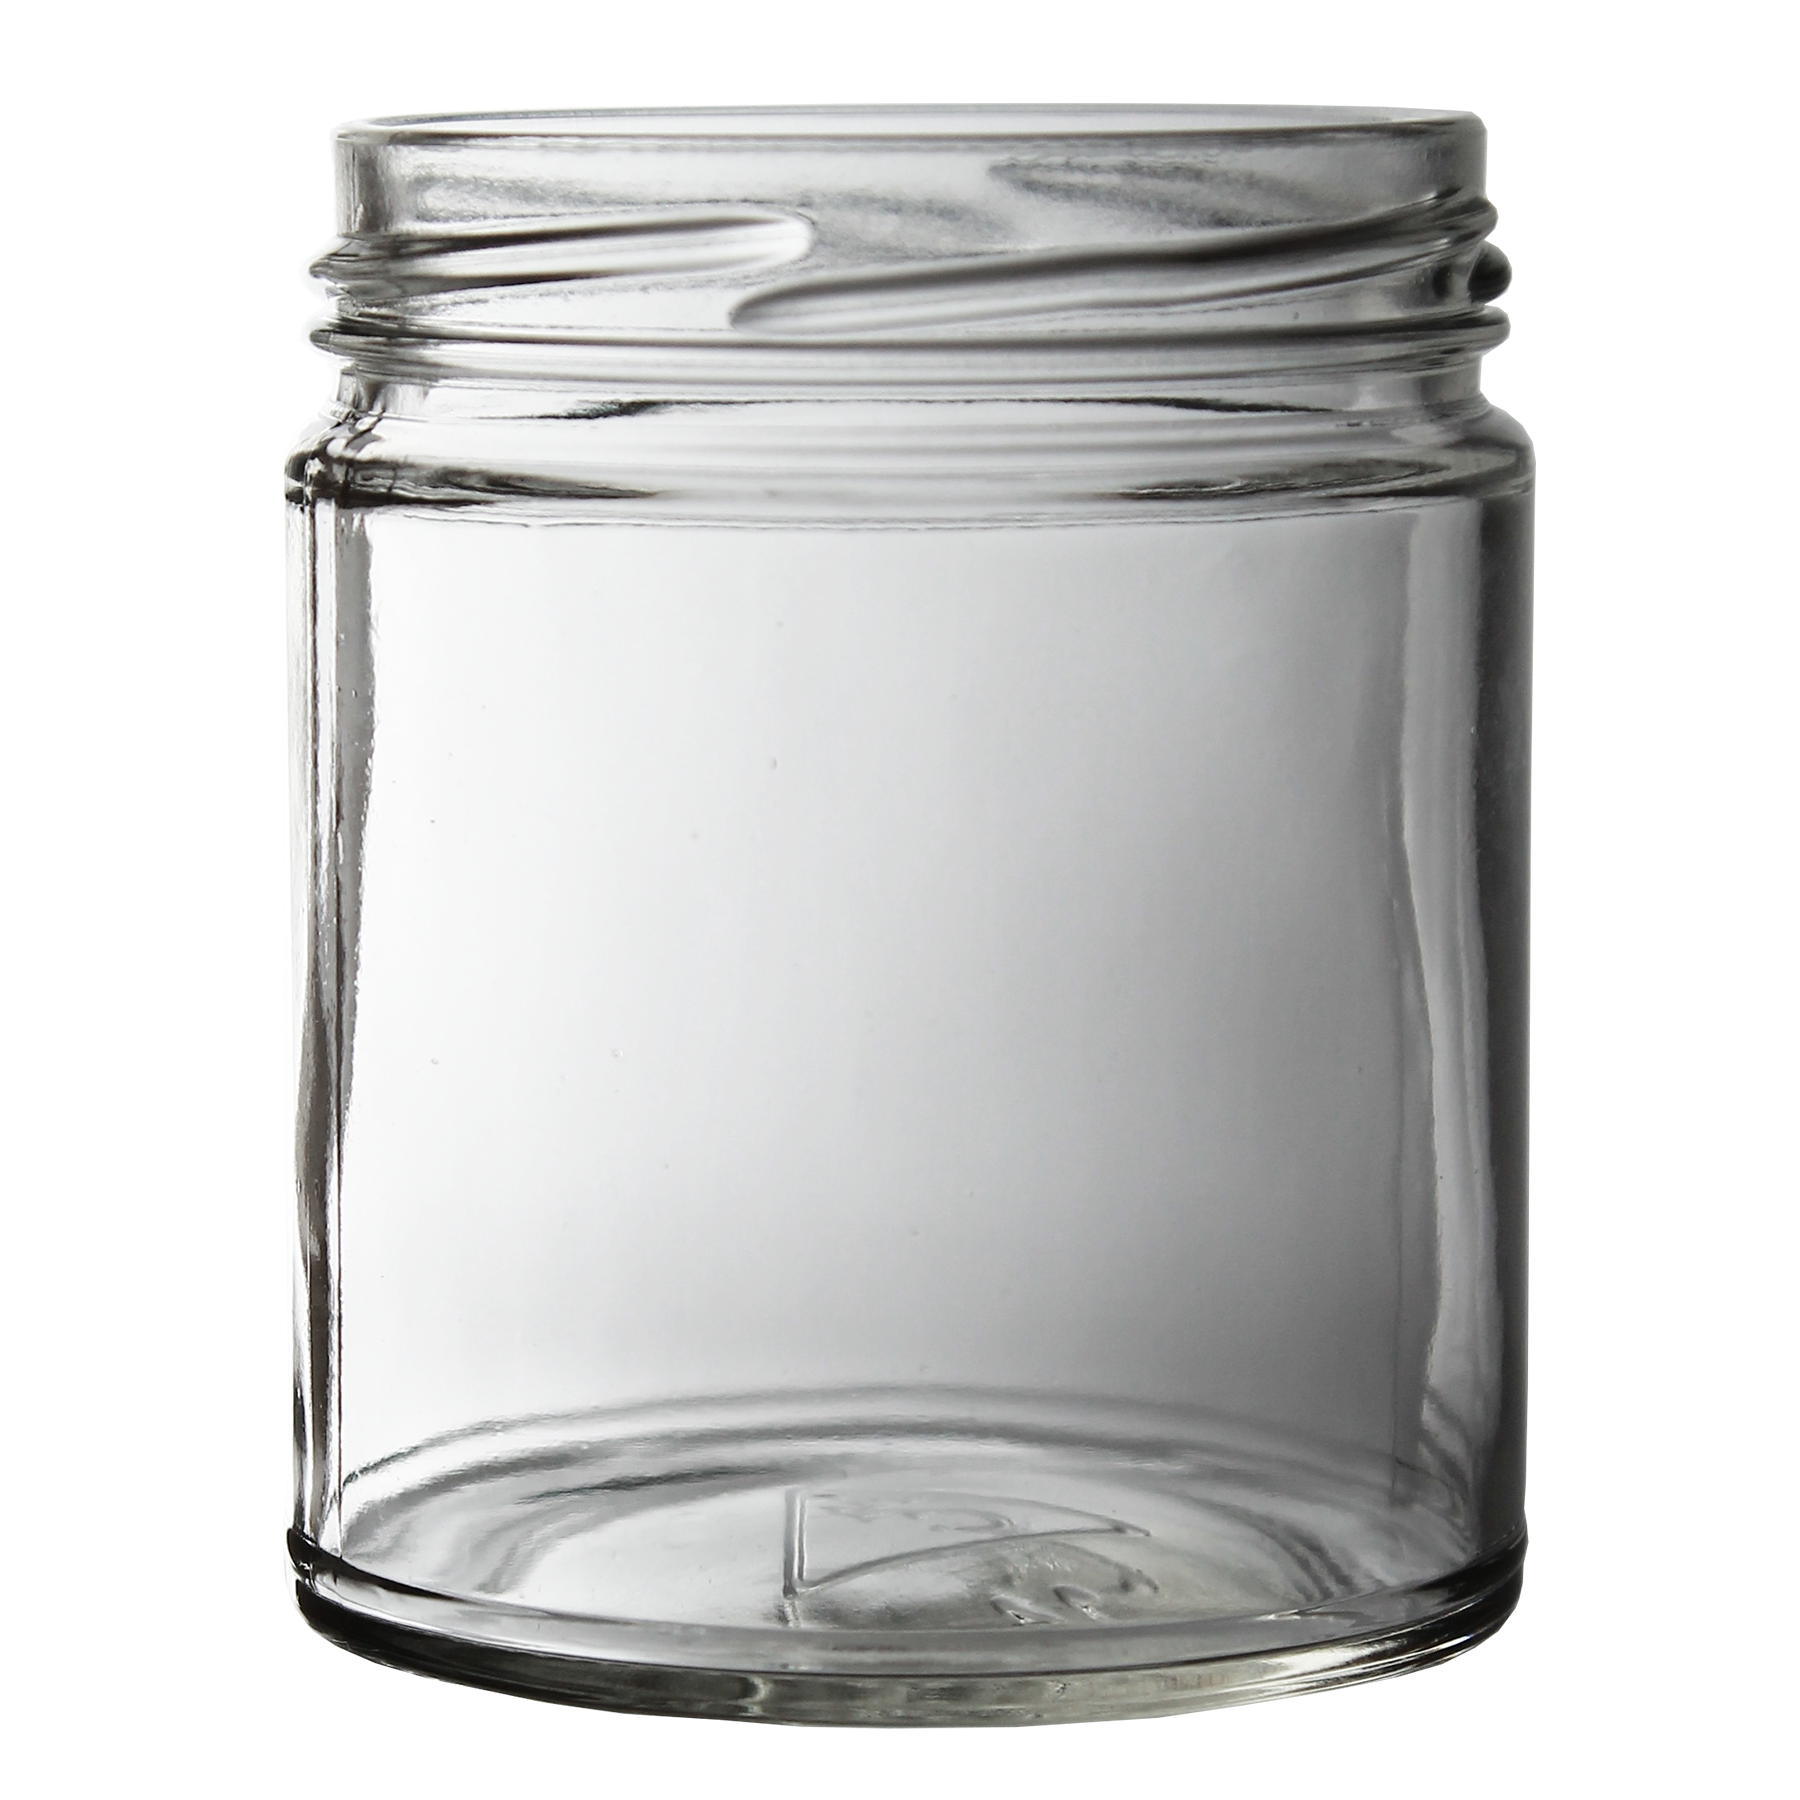 Glass jar png. Transparent images pluspng oz